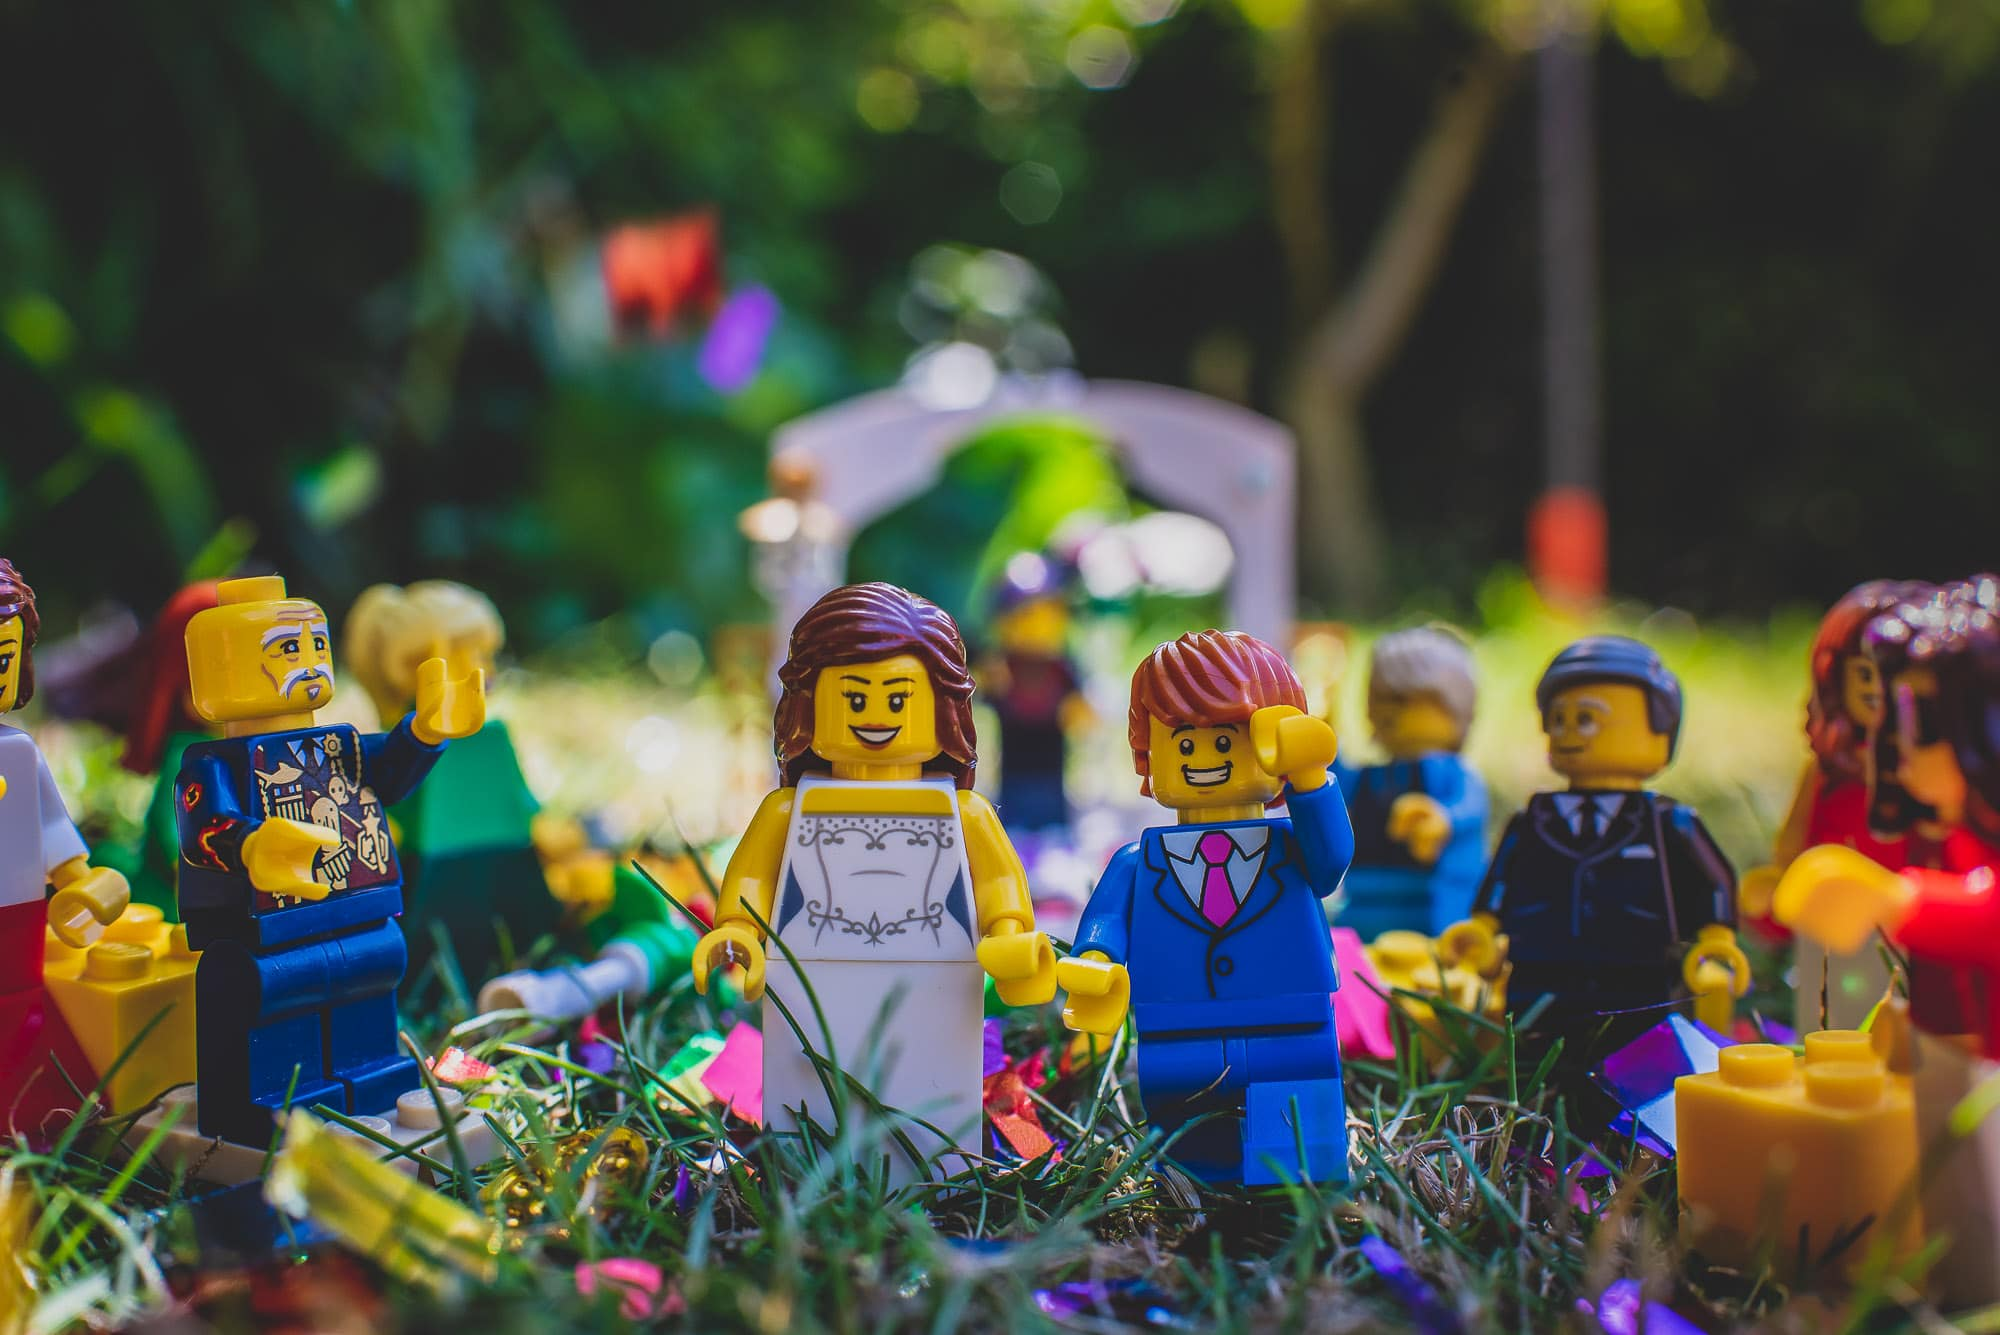 Lego Brise and Groom walk the aisle as a Newlywed couple